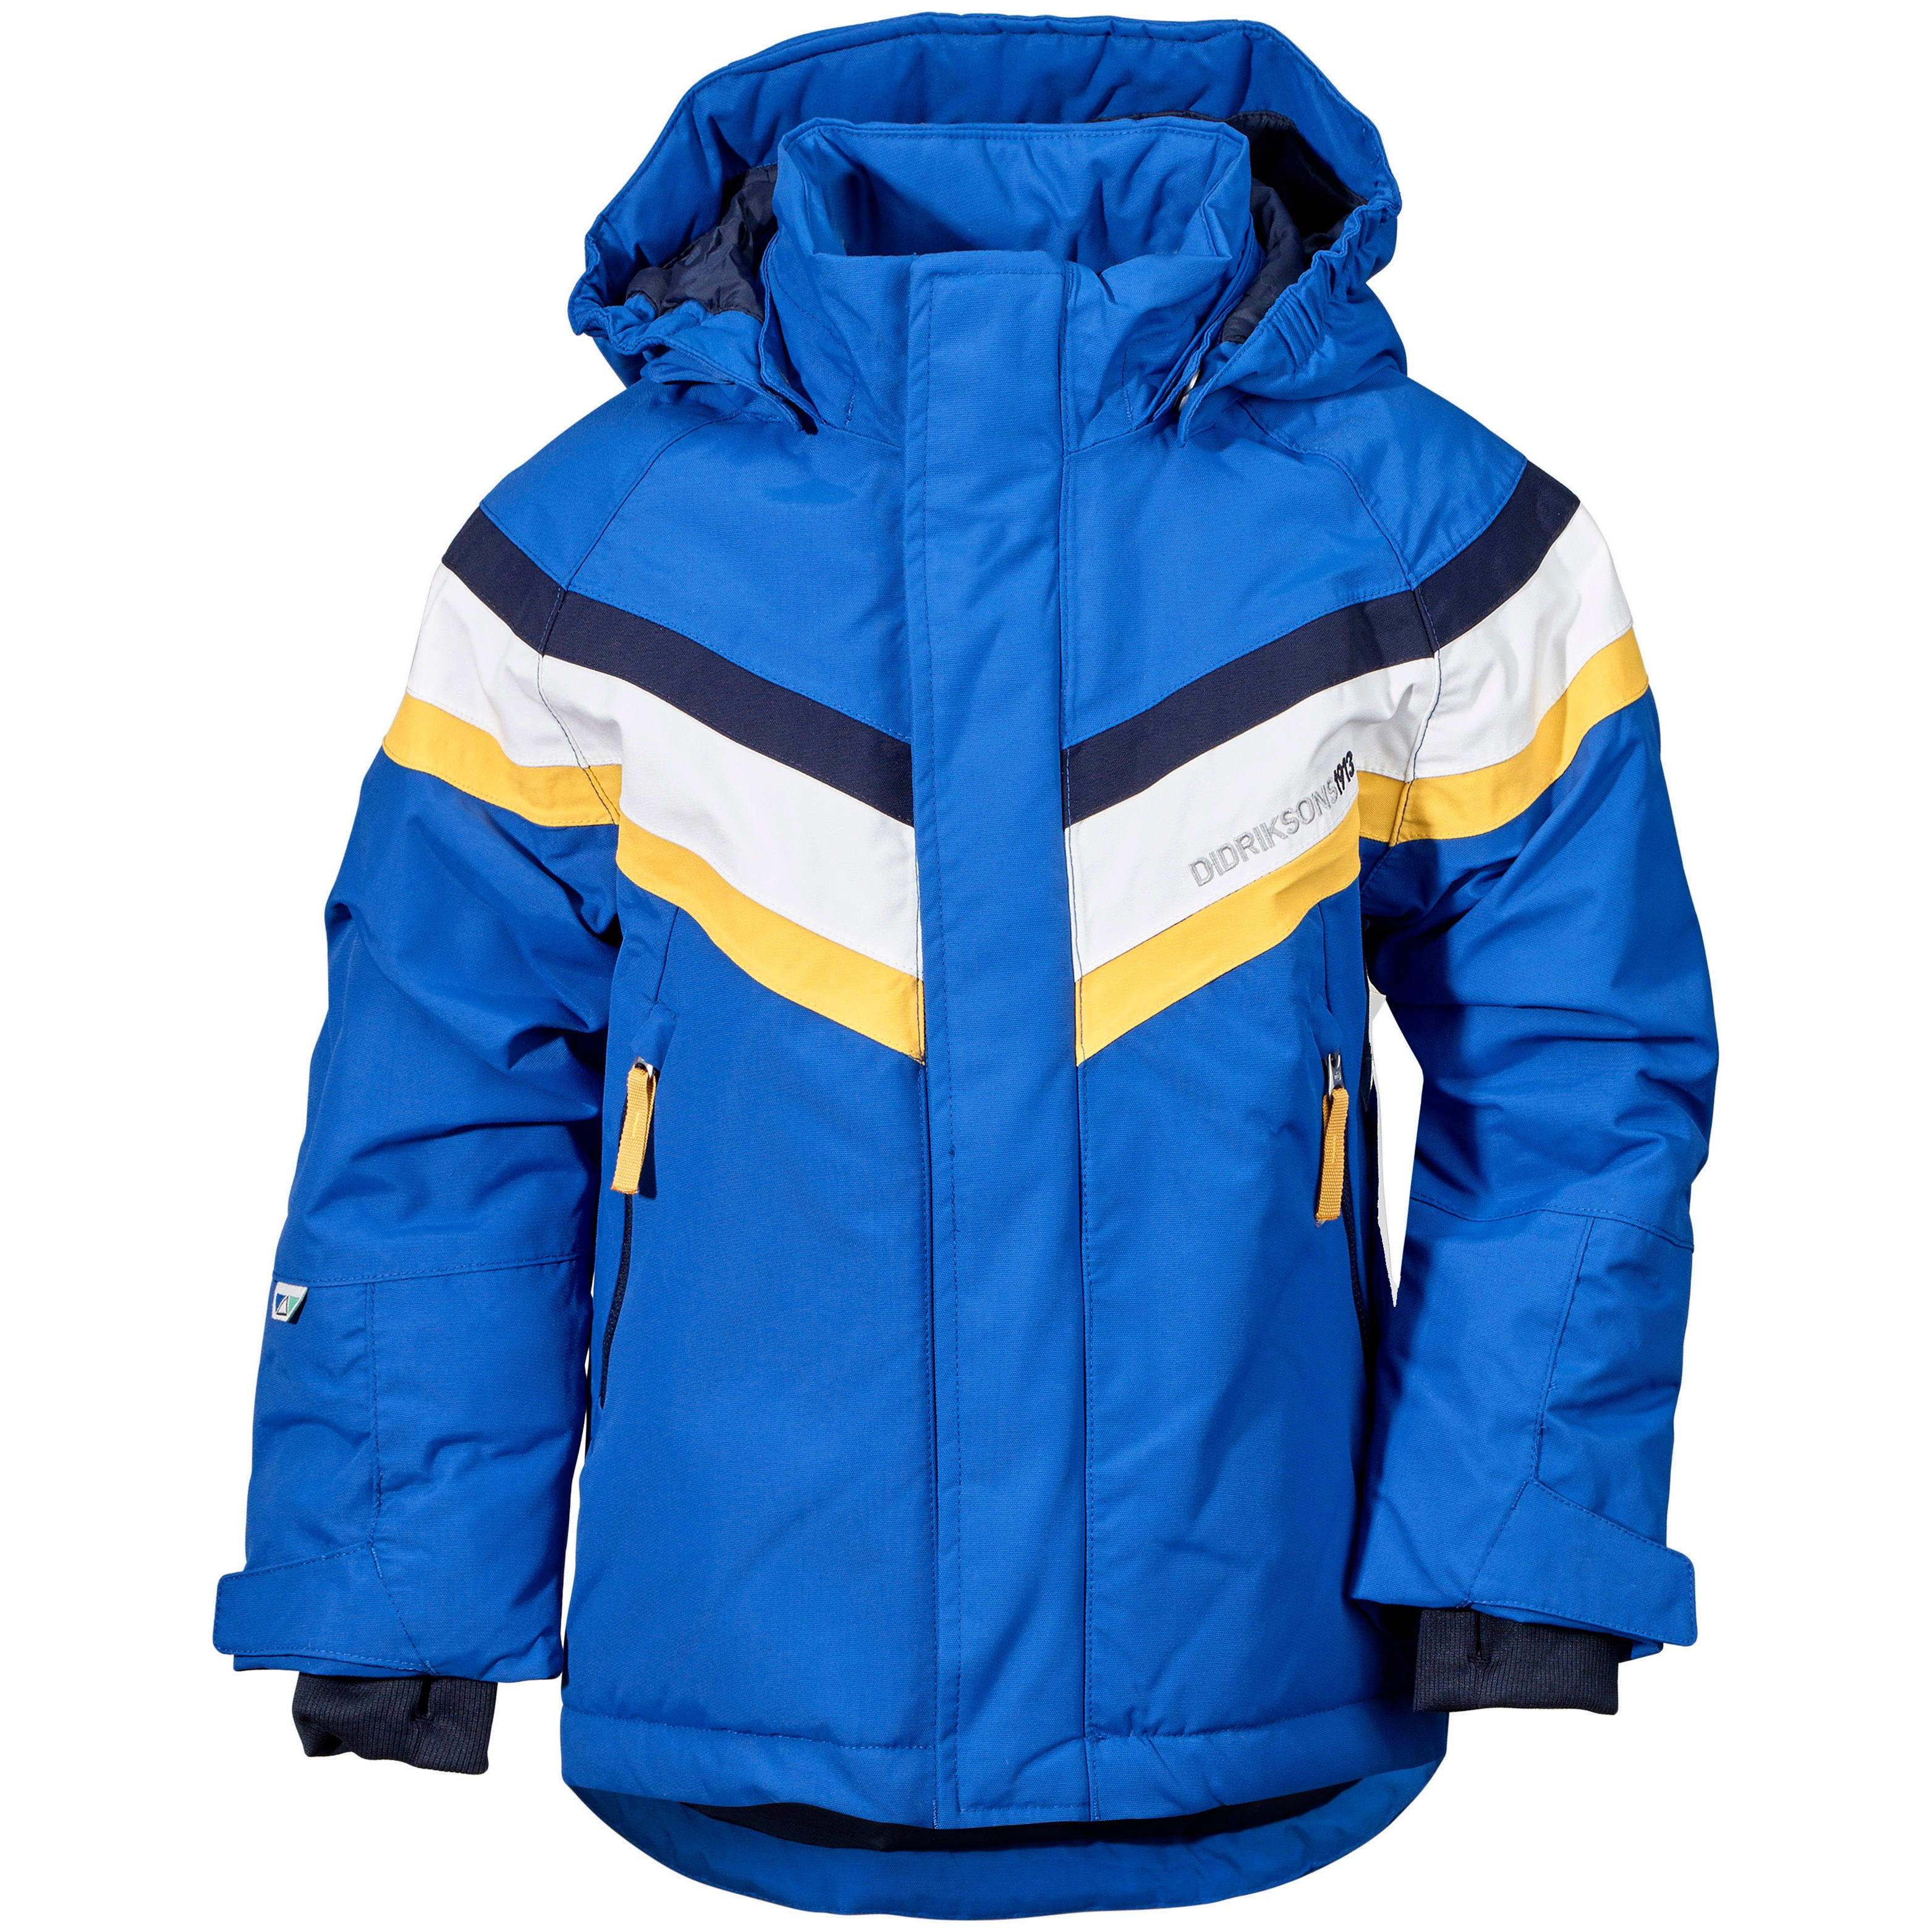 1be4633c Buy Didriksons Säfsen Kids Jacket from Outnorth